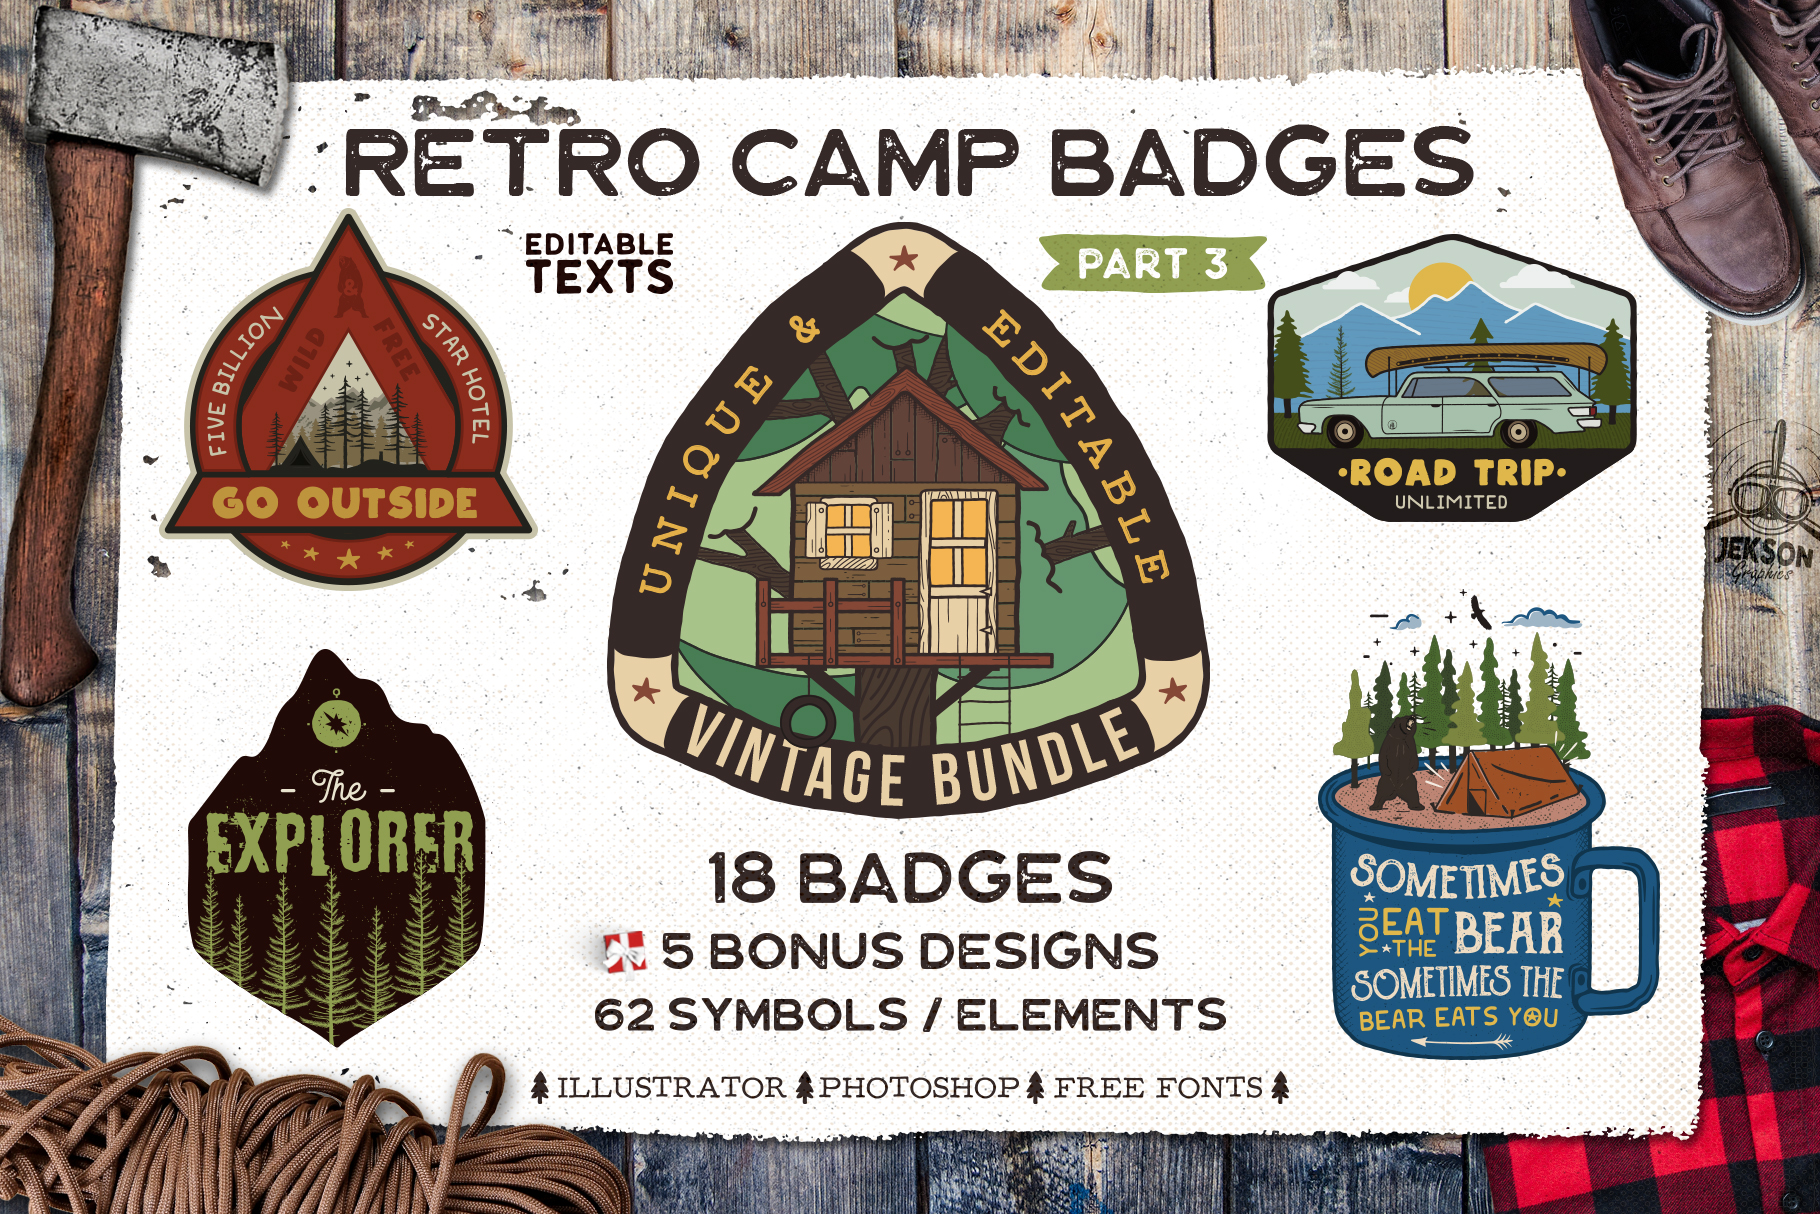 Retro Camp Badges | Adventure Patches. Part 3 | SVG Cut File example image 1